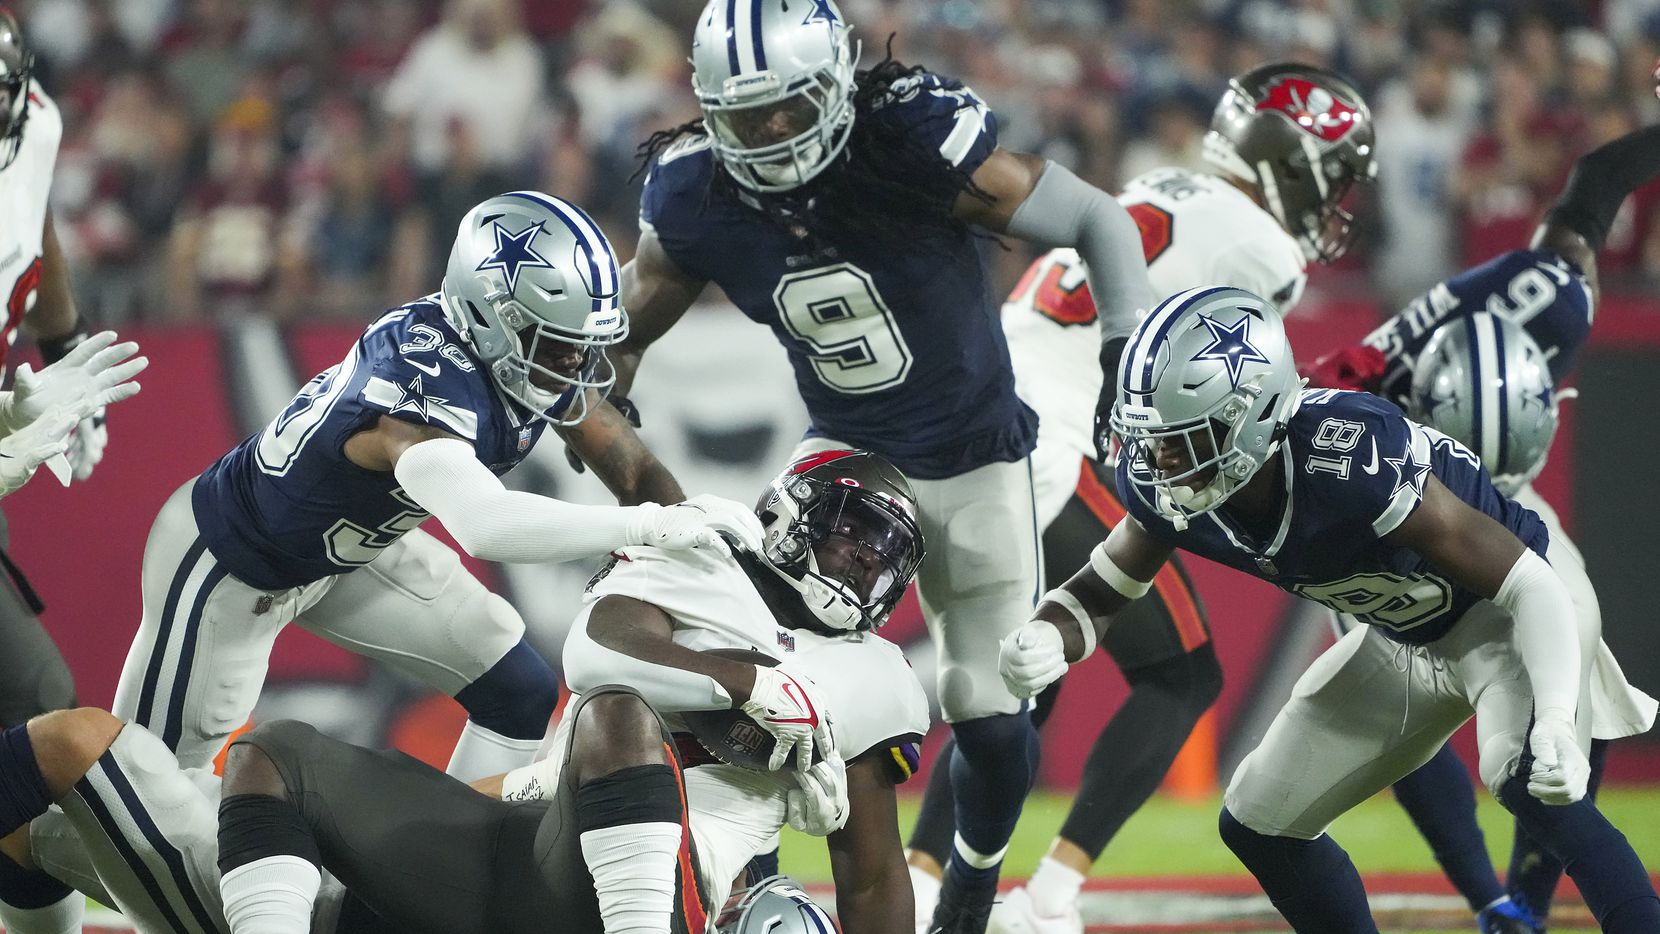 Tampa Bay Buccaneers running back Leonard Fournette (7) is brought down by Dallas Cowboys linebacker Leighton Vander Esch (55) along with cornerback Anthony Brown (30), linebacker Jaylon Smith (9) and safety Damontae Kazee (18) during the first half of an NFL football game at Raymond James Stadium on Thursday, Sept. 9, 2021, in Tampa, Fla.